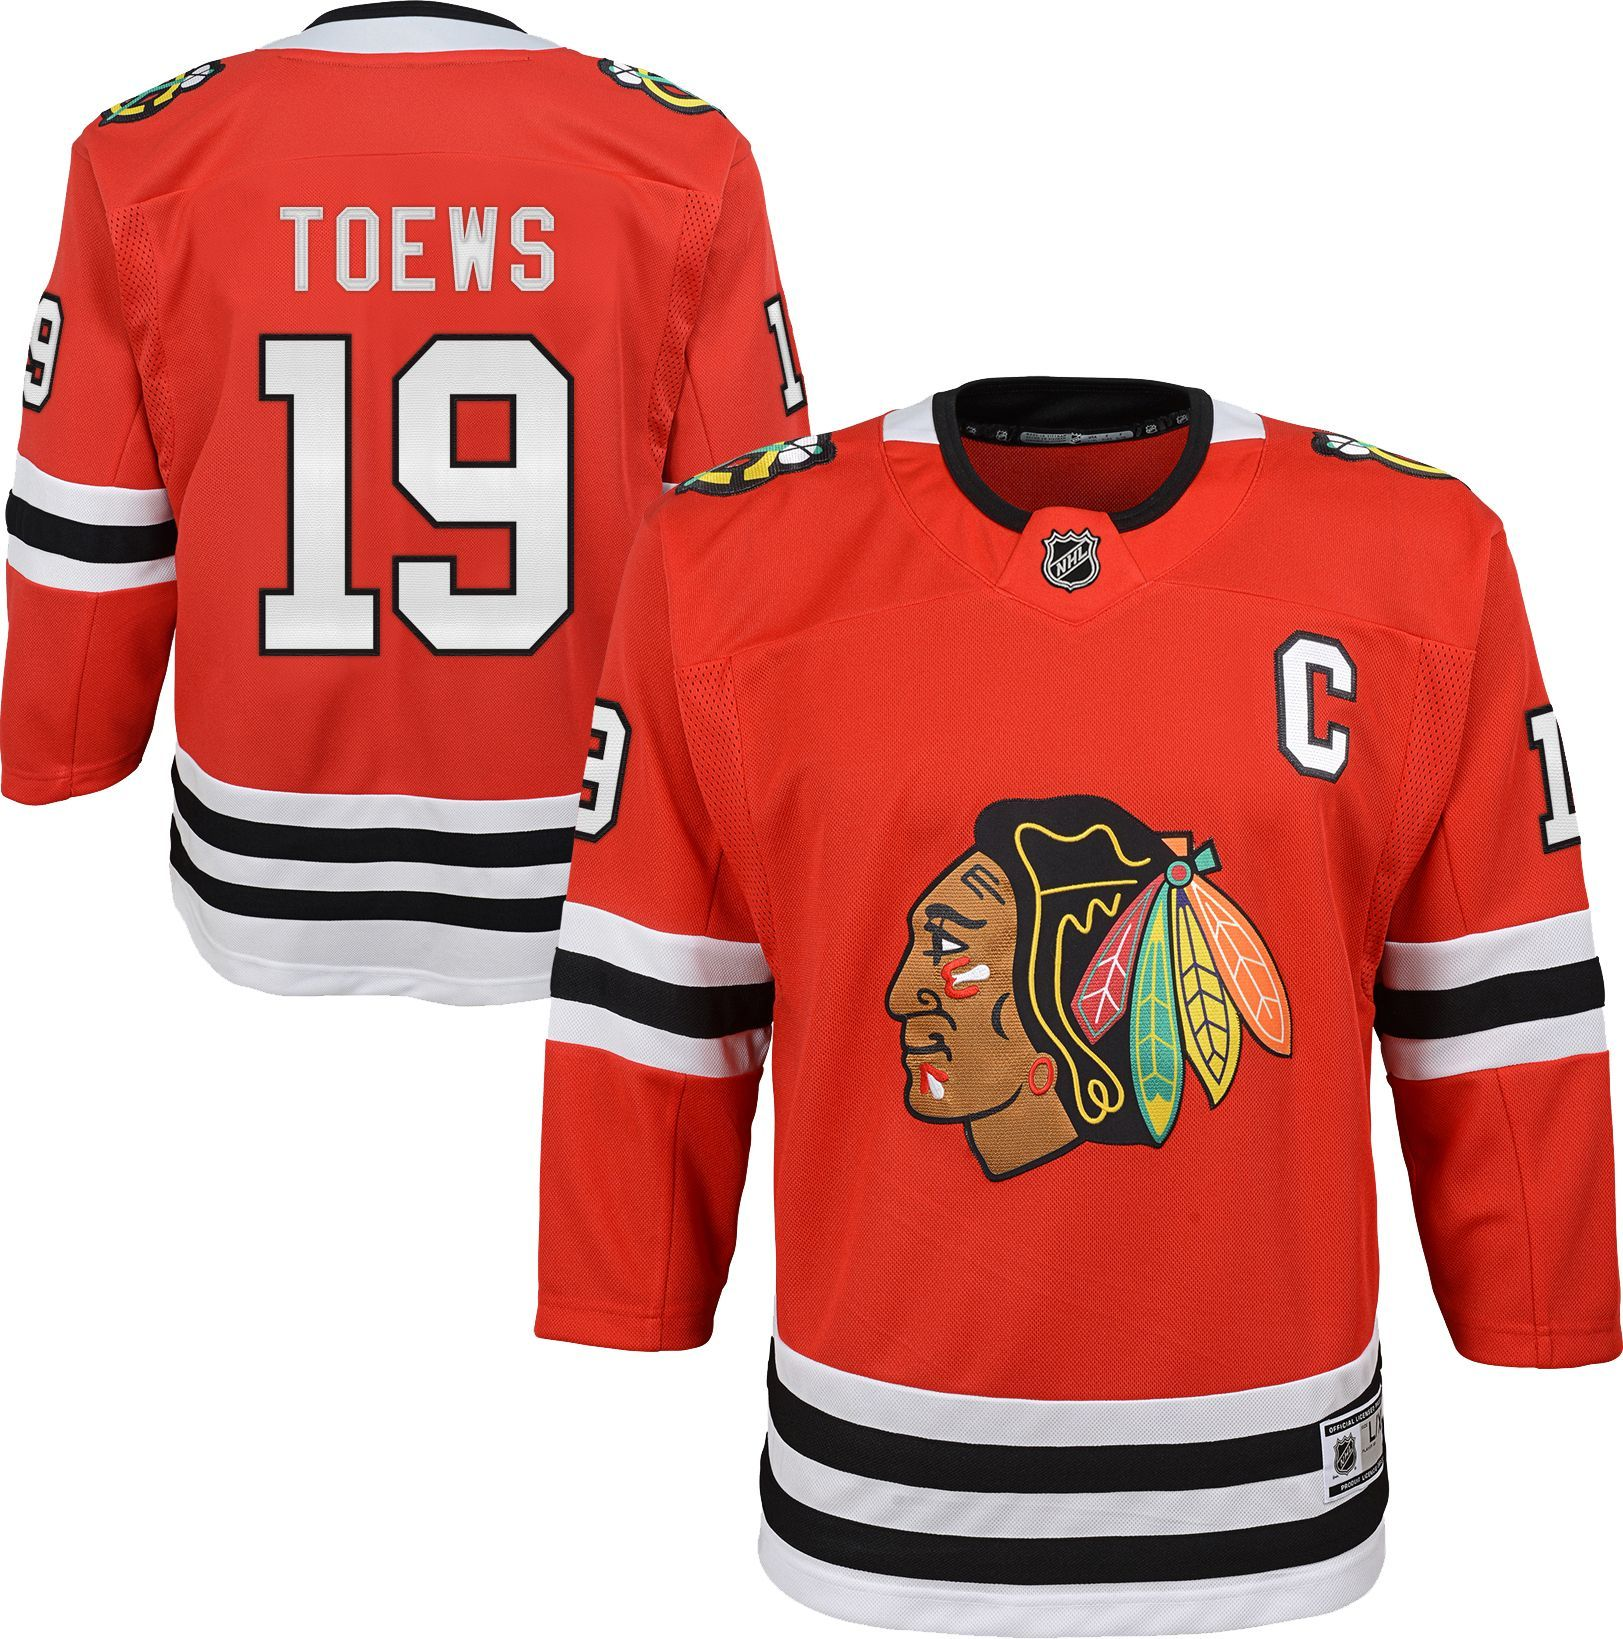 ade7c2a21 NHL Youth Chicago Blackhawks Jonathan Toews #19 Premier Home Jersey, Size:  L/XL, Team